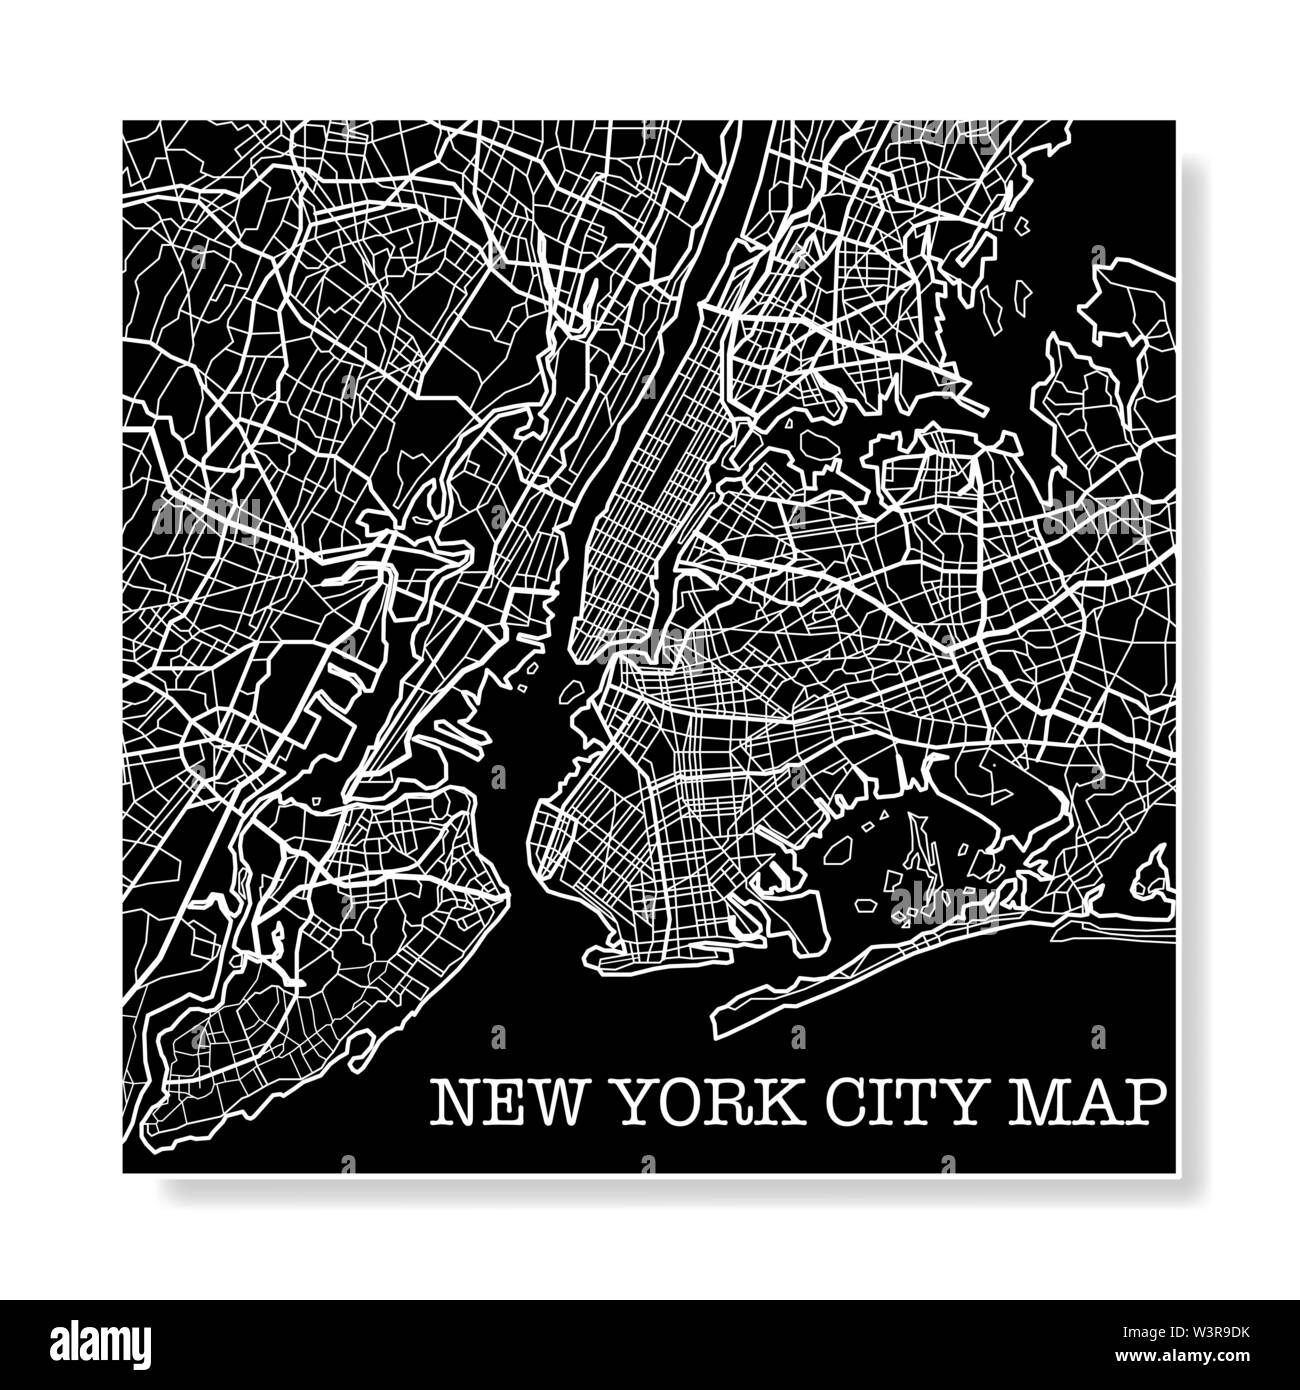 Black and white New York city map background - Stock Vector